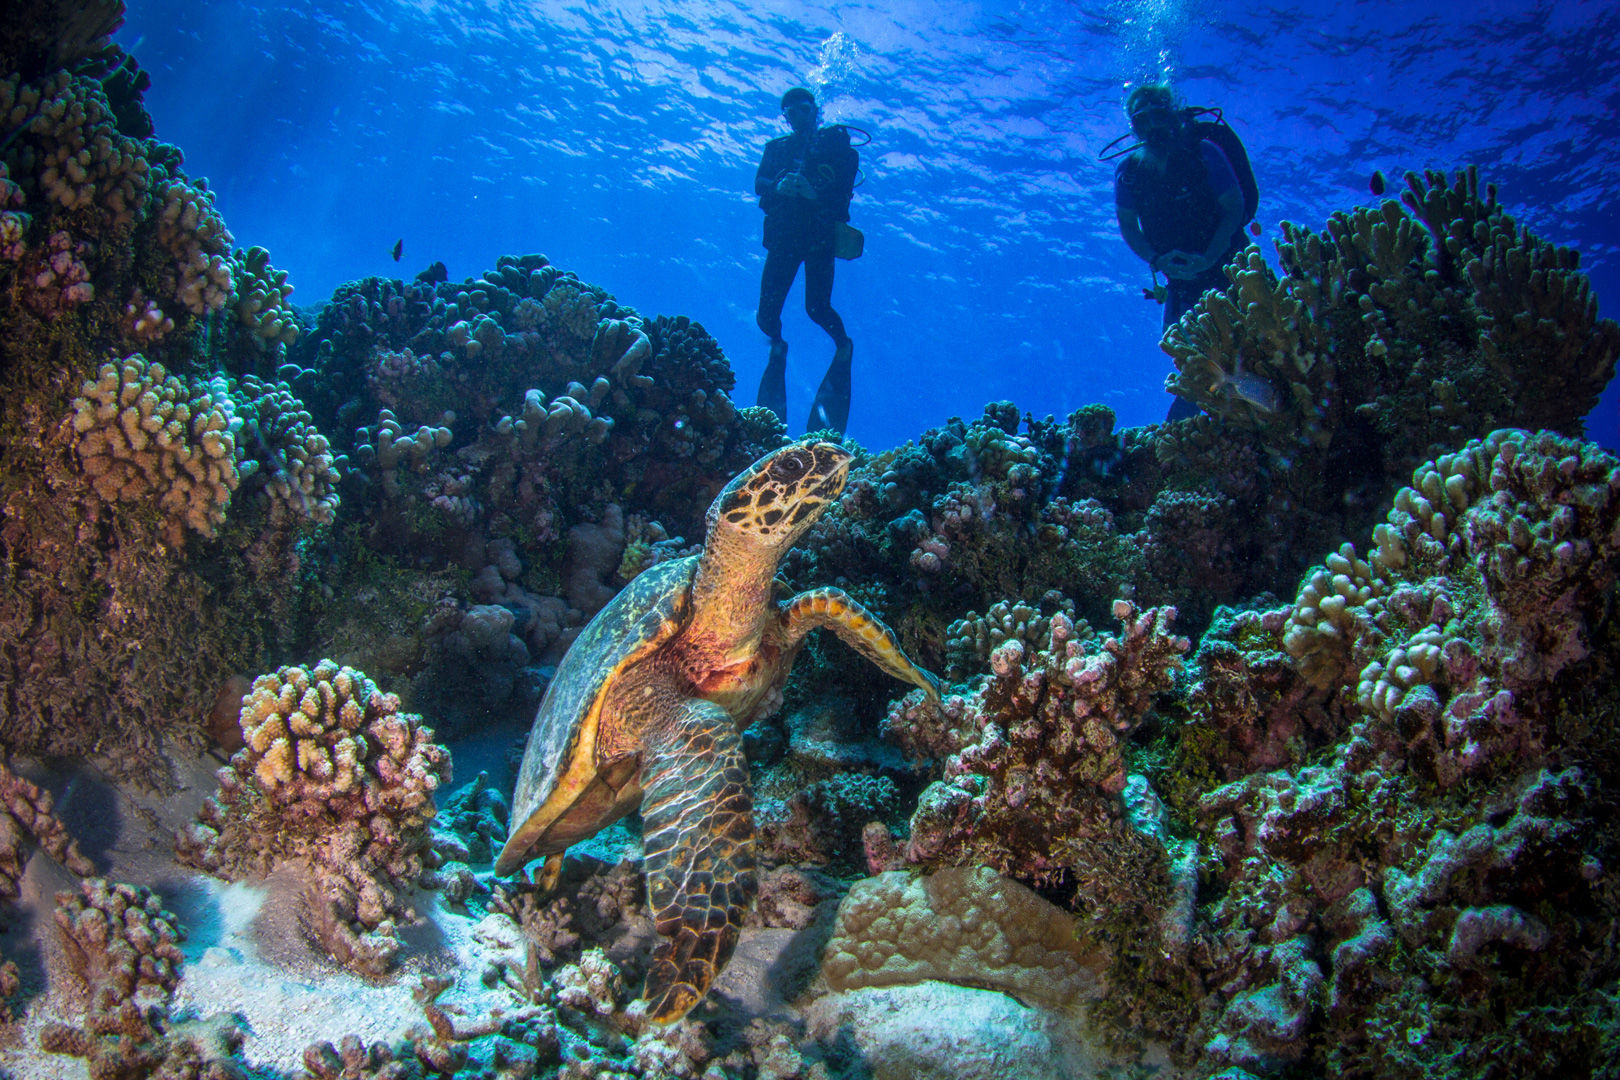 The Islands of Tahiti deliver an enticing combination of topside beauty and underwater excitement.